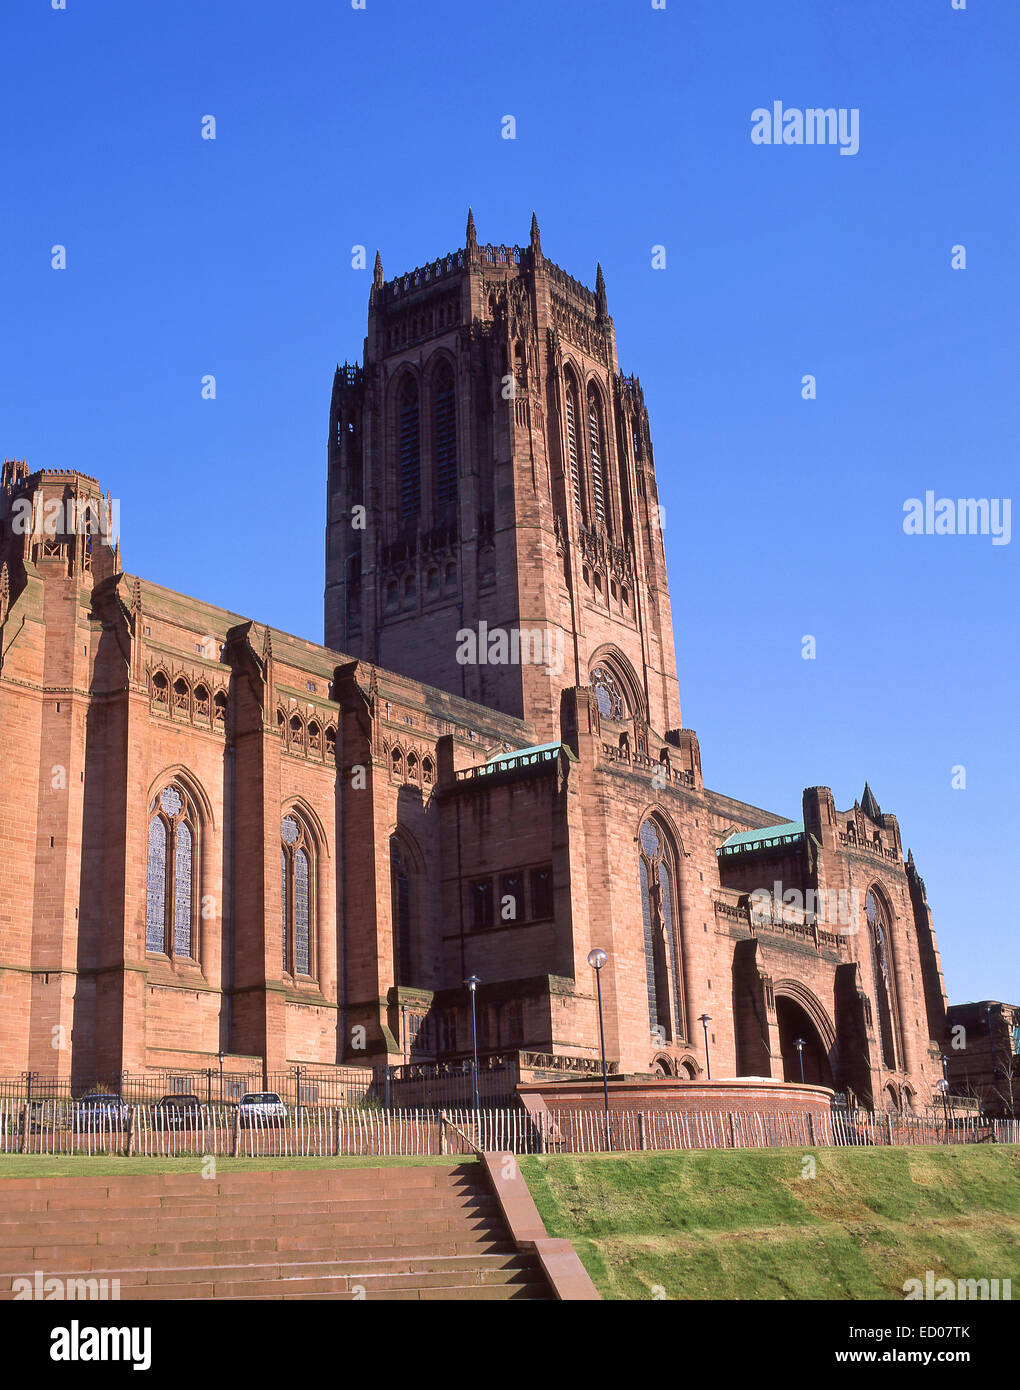 Liverpool Cathedral, St James's Mount, Liverpool, Merseyside, England, United Kingdom - Stock Image